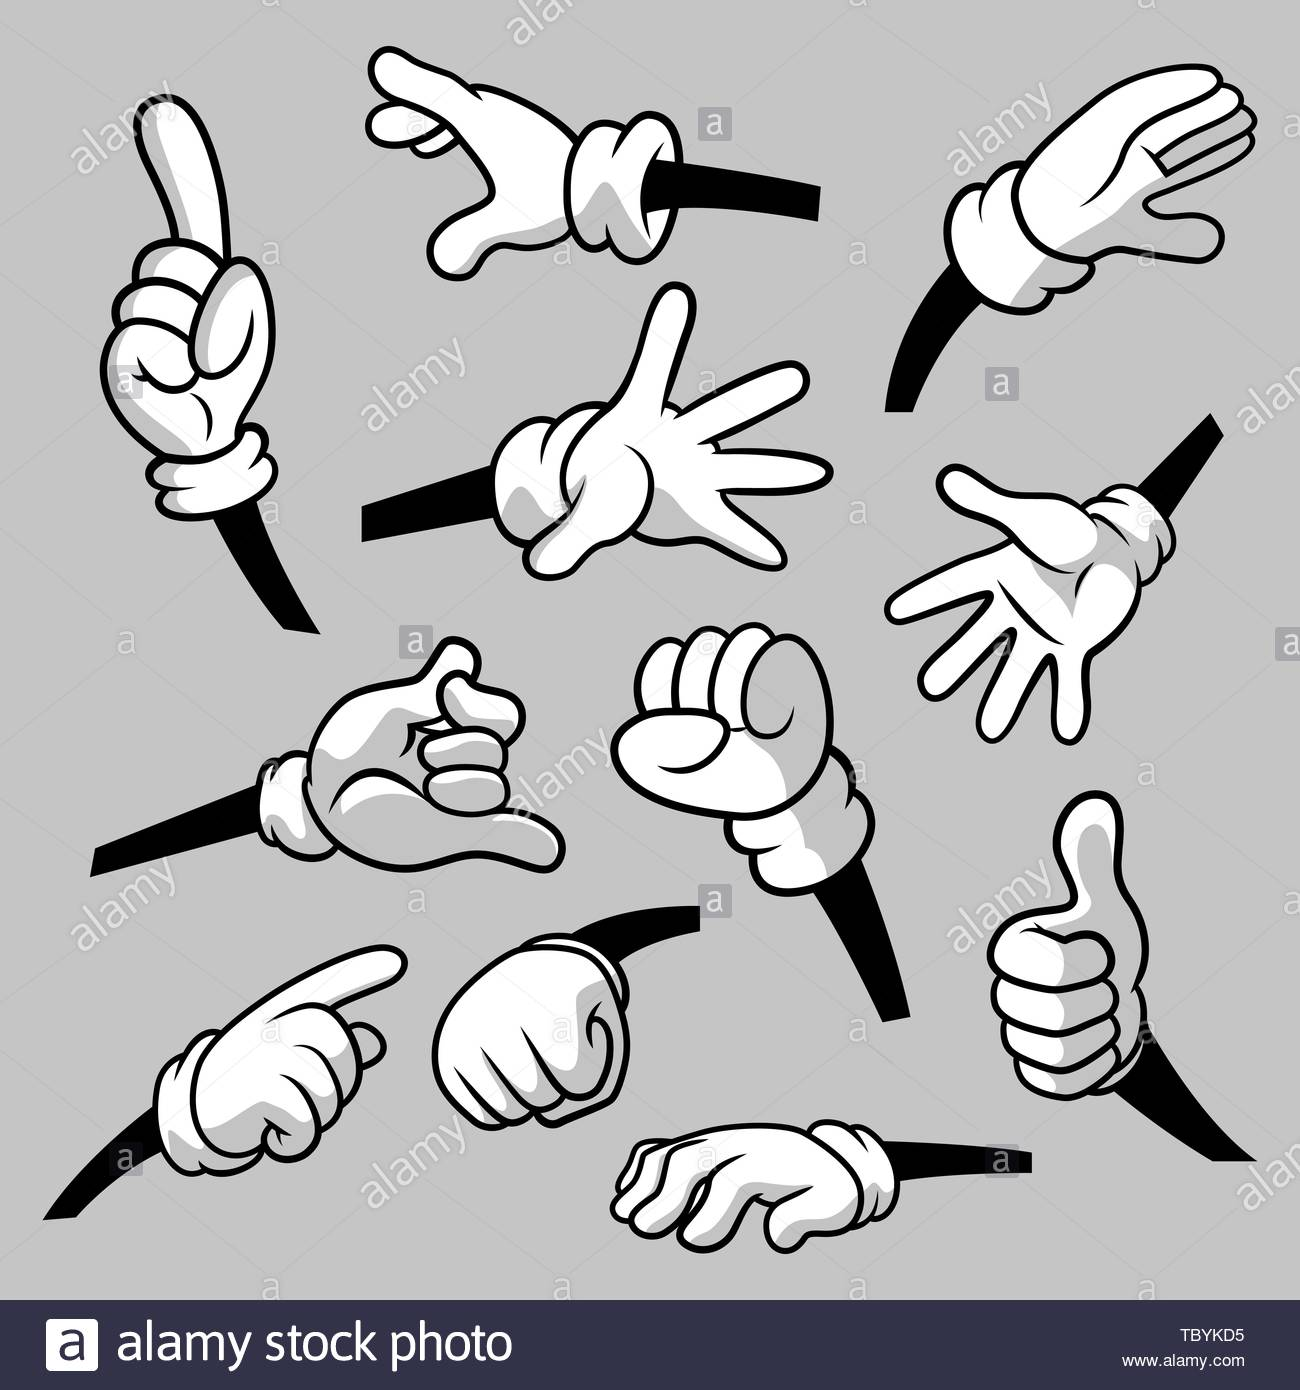 Cartoon hands with gloves icon set isolated. Vector clipart.